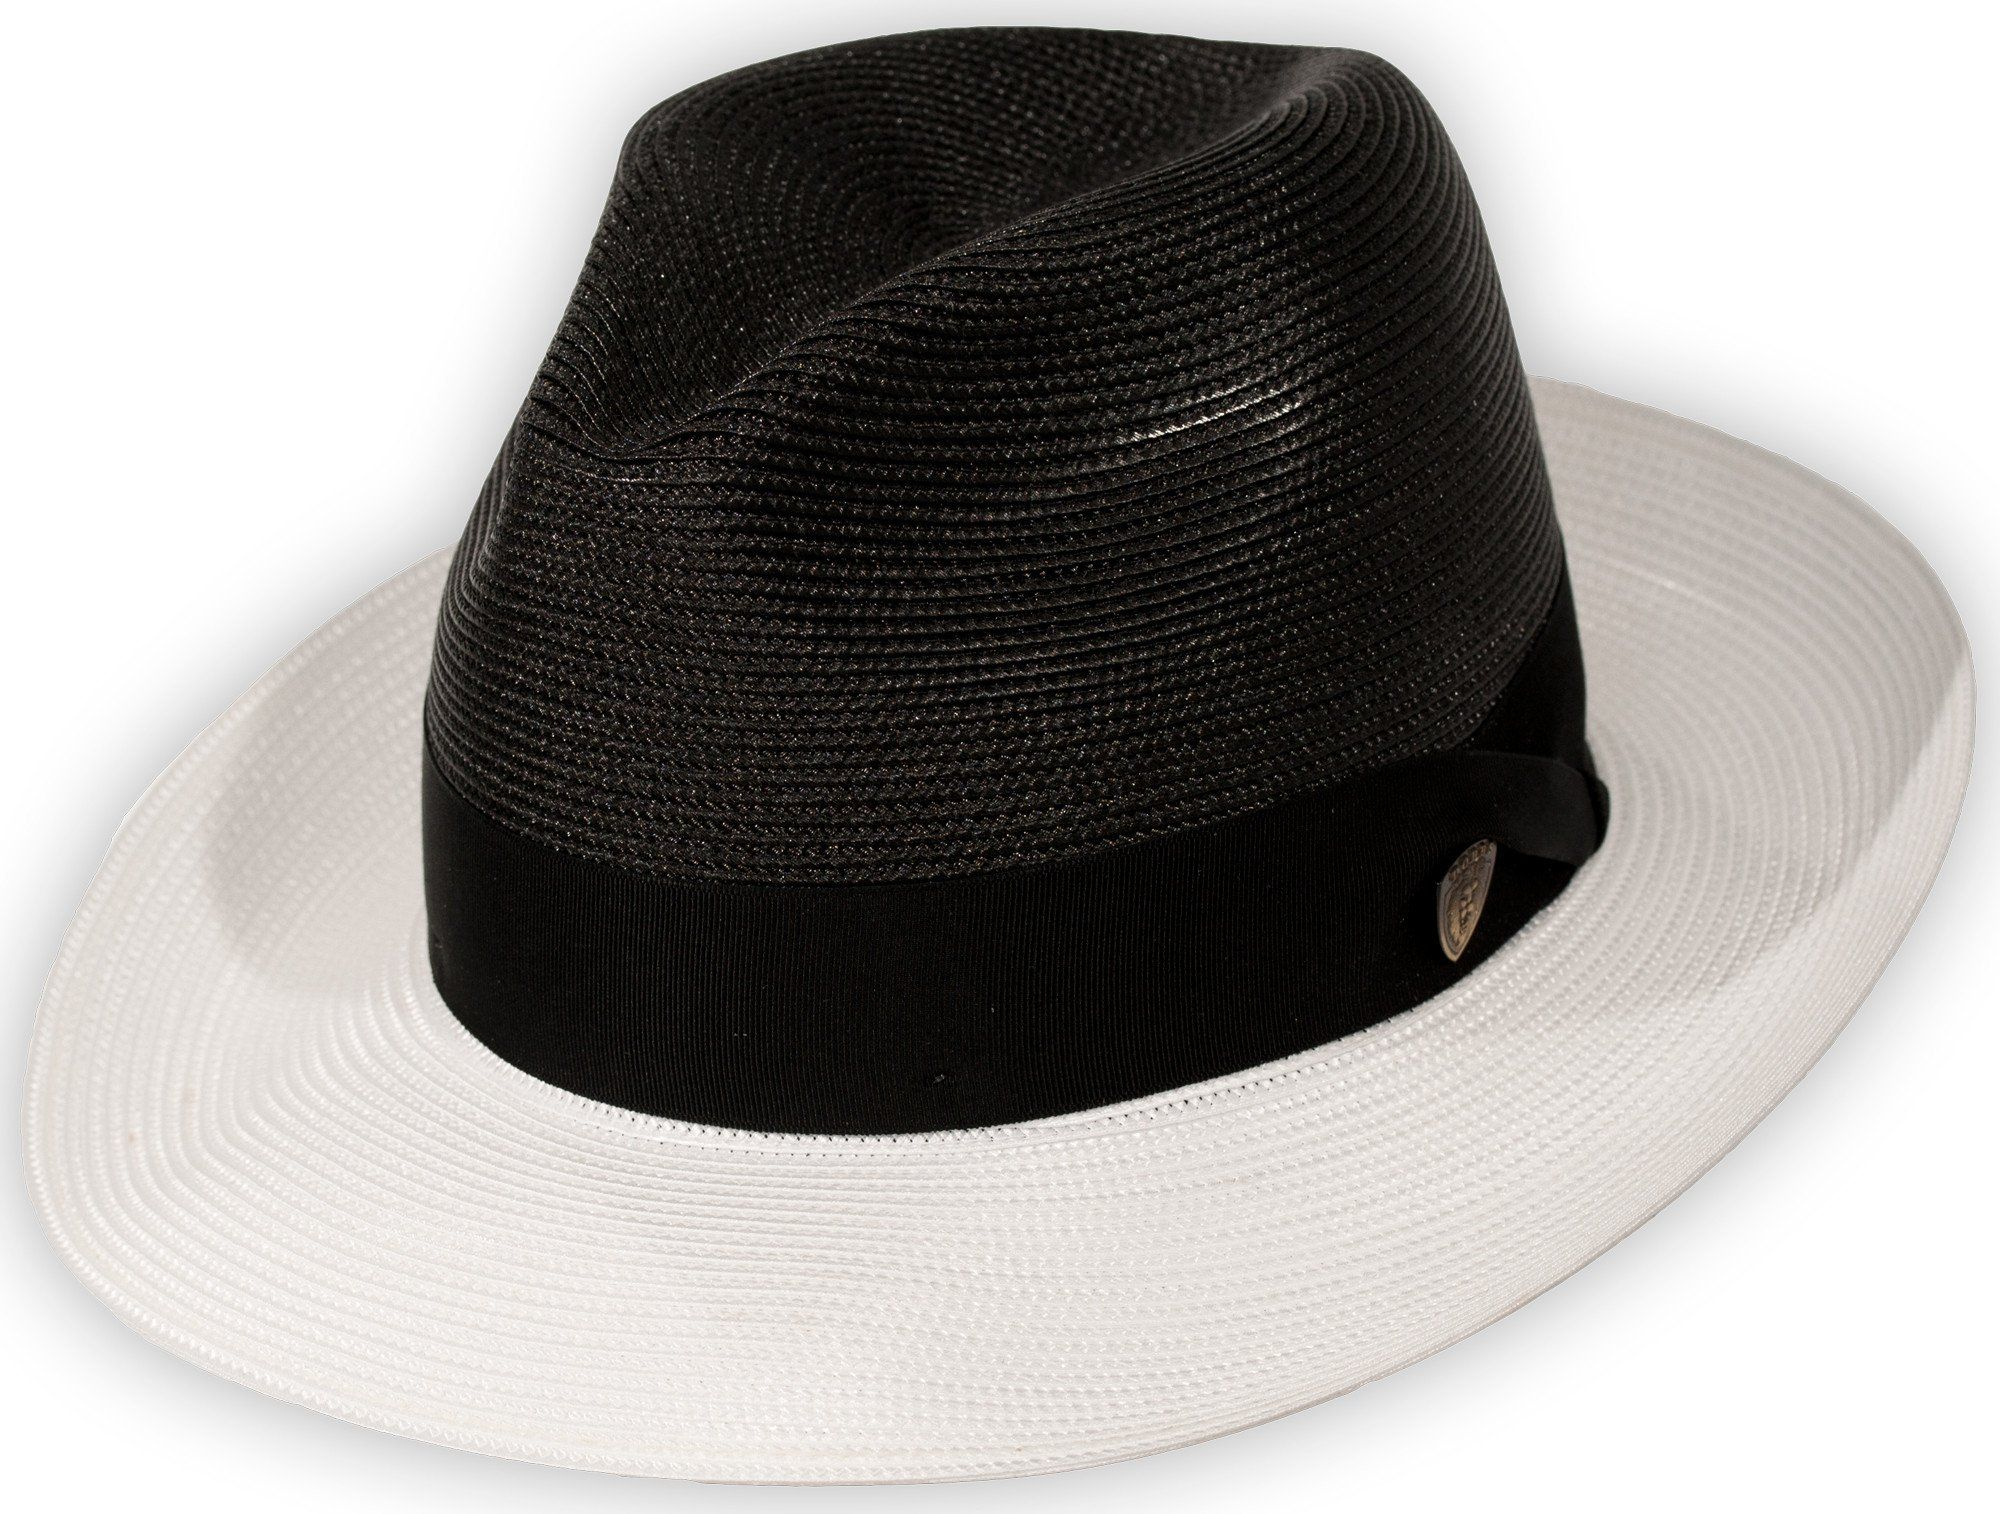 27e376af672b52 Toledo Two-Tone Straw Fedora by Dobbs | Hats | Straw fedora, Two ...